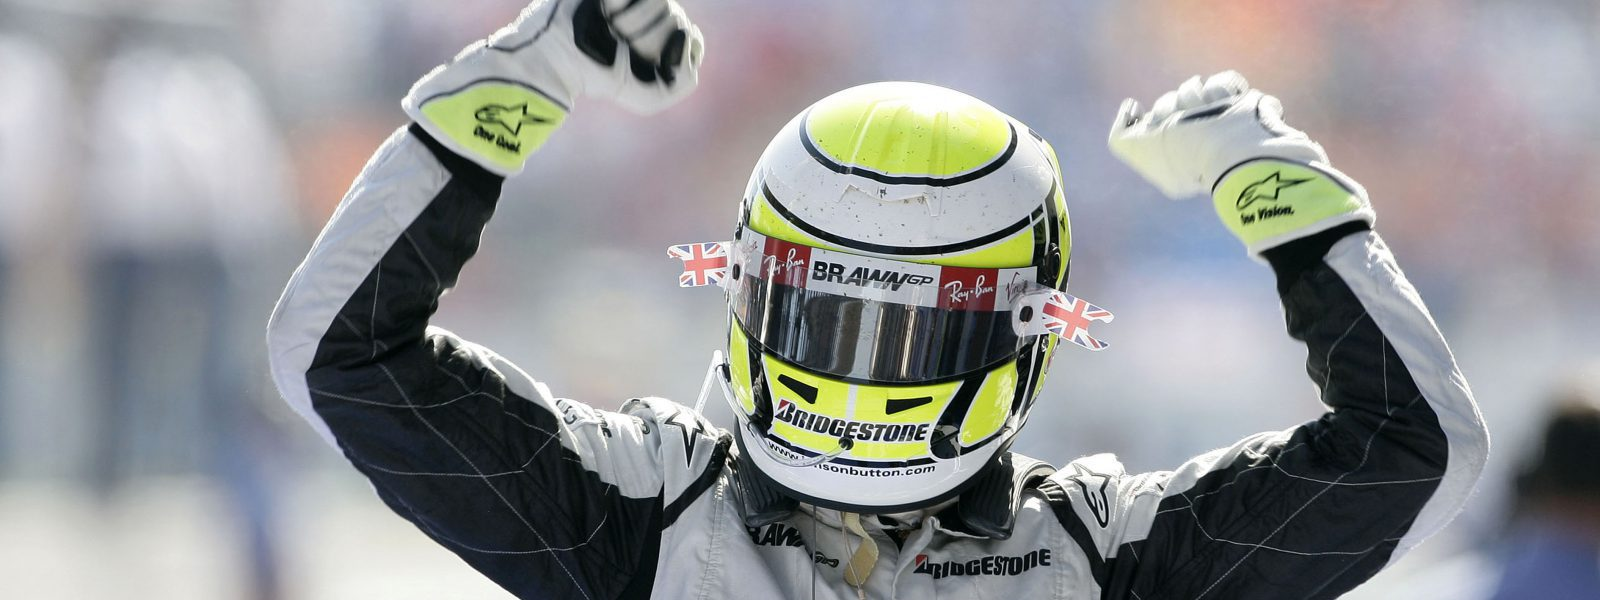 Motorsports / Formula 1: World Championship 2009, GP of Turkey, 22 Jenson Button (GBR, Brawn GP),   *** Local Caption *** +++ www.hoch-zwei.net +++ copyright: HOCH ZWEI / Michael Kunkel +++